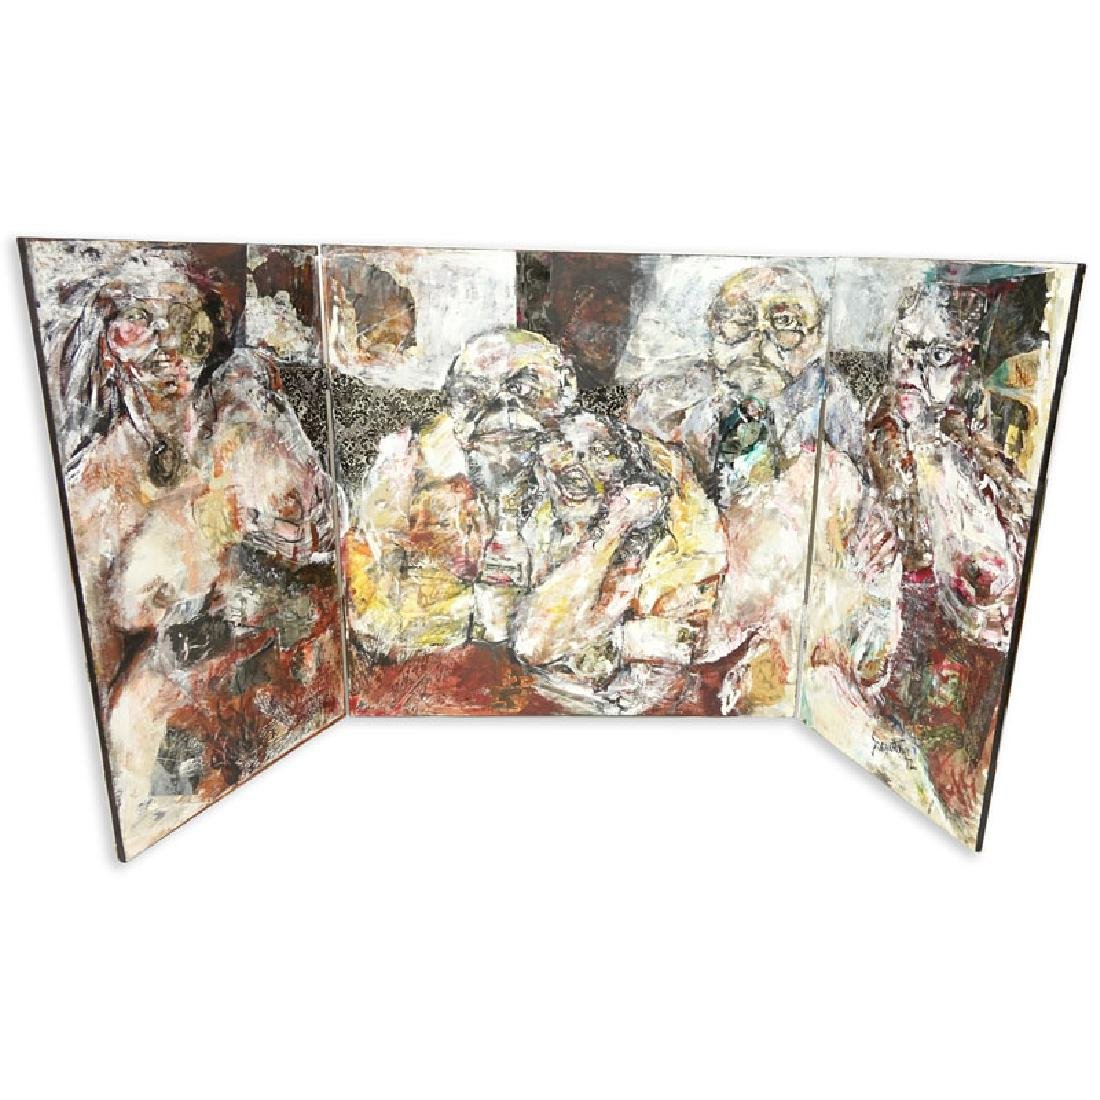 Large Tryptic Mixed Media on Canvas, Interior Scene